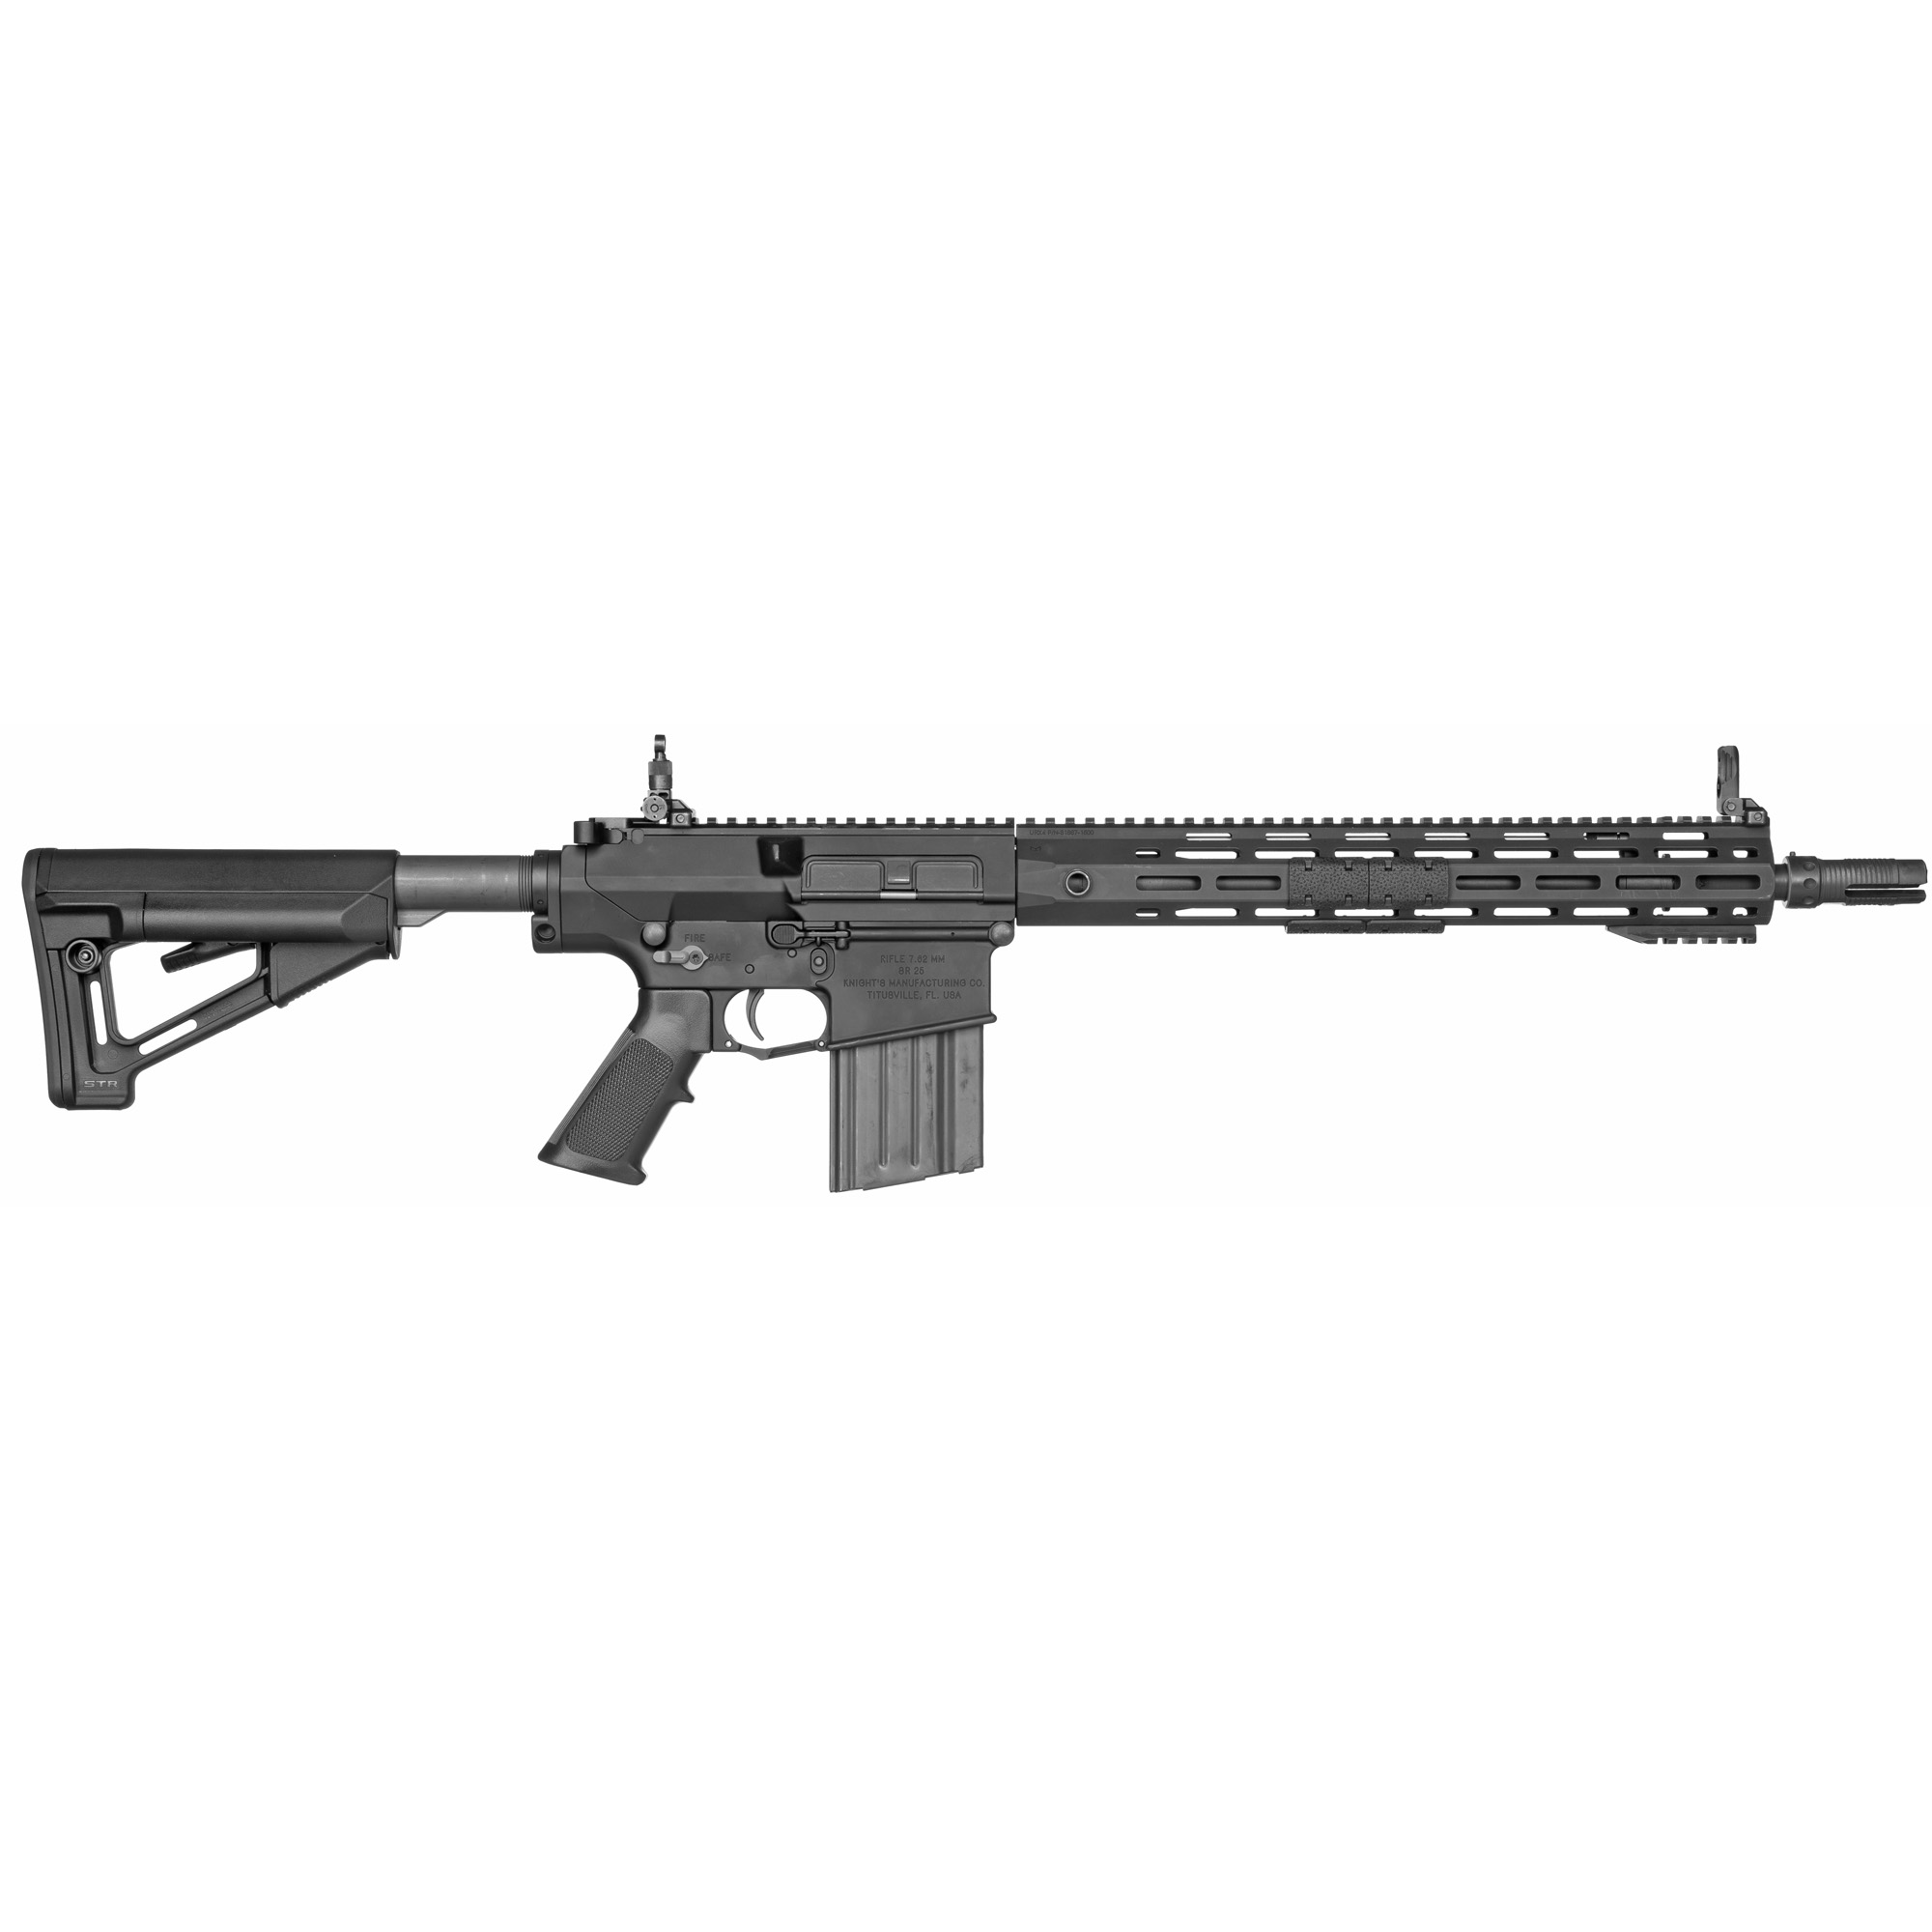 """The SR-25 E2 series is the latest evolution of the dual role 7.62 mm NATO Carbine and Rifle. Each are equally adept at putting rounds on target past 800 meters or rapid multi-shot engagements at close range. An ambidextrous bolt release"""" selector"""" and magazine release offer the left-handed user the ergonomic advantages inherent to AR15 based controls."""